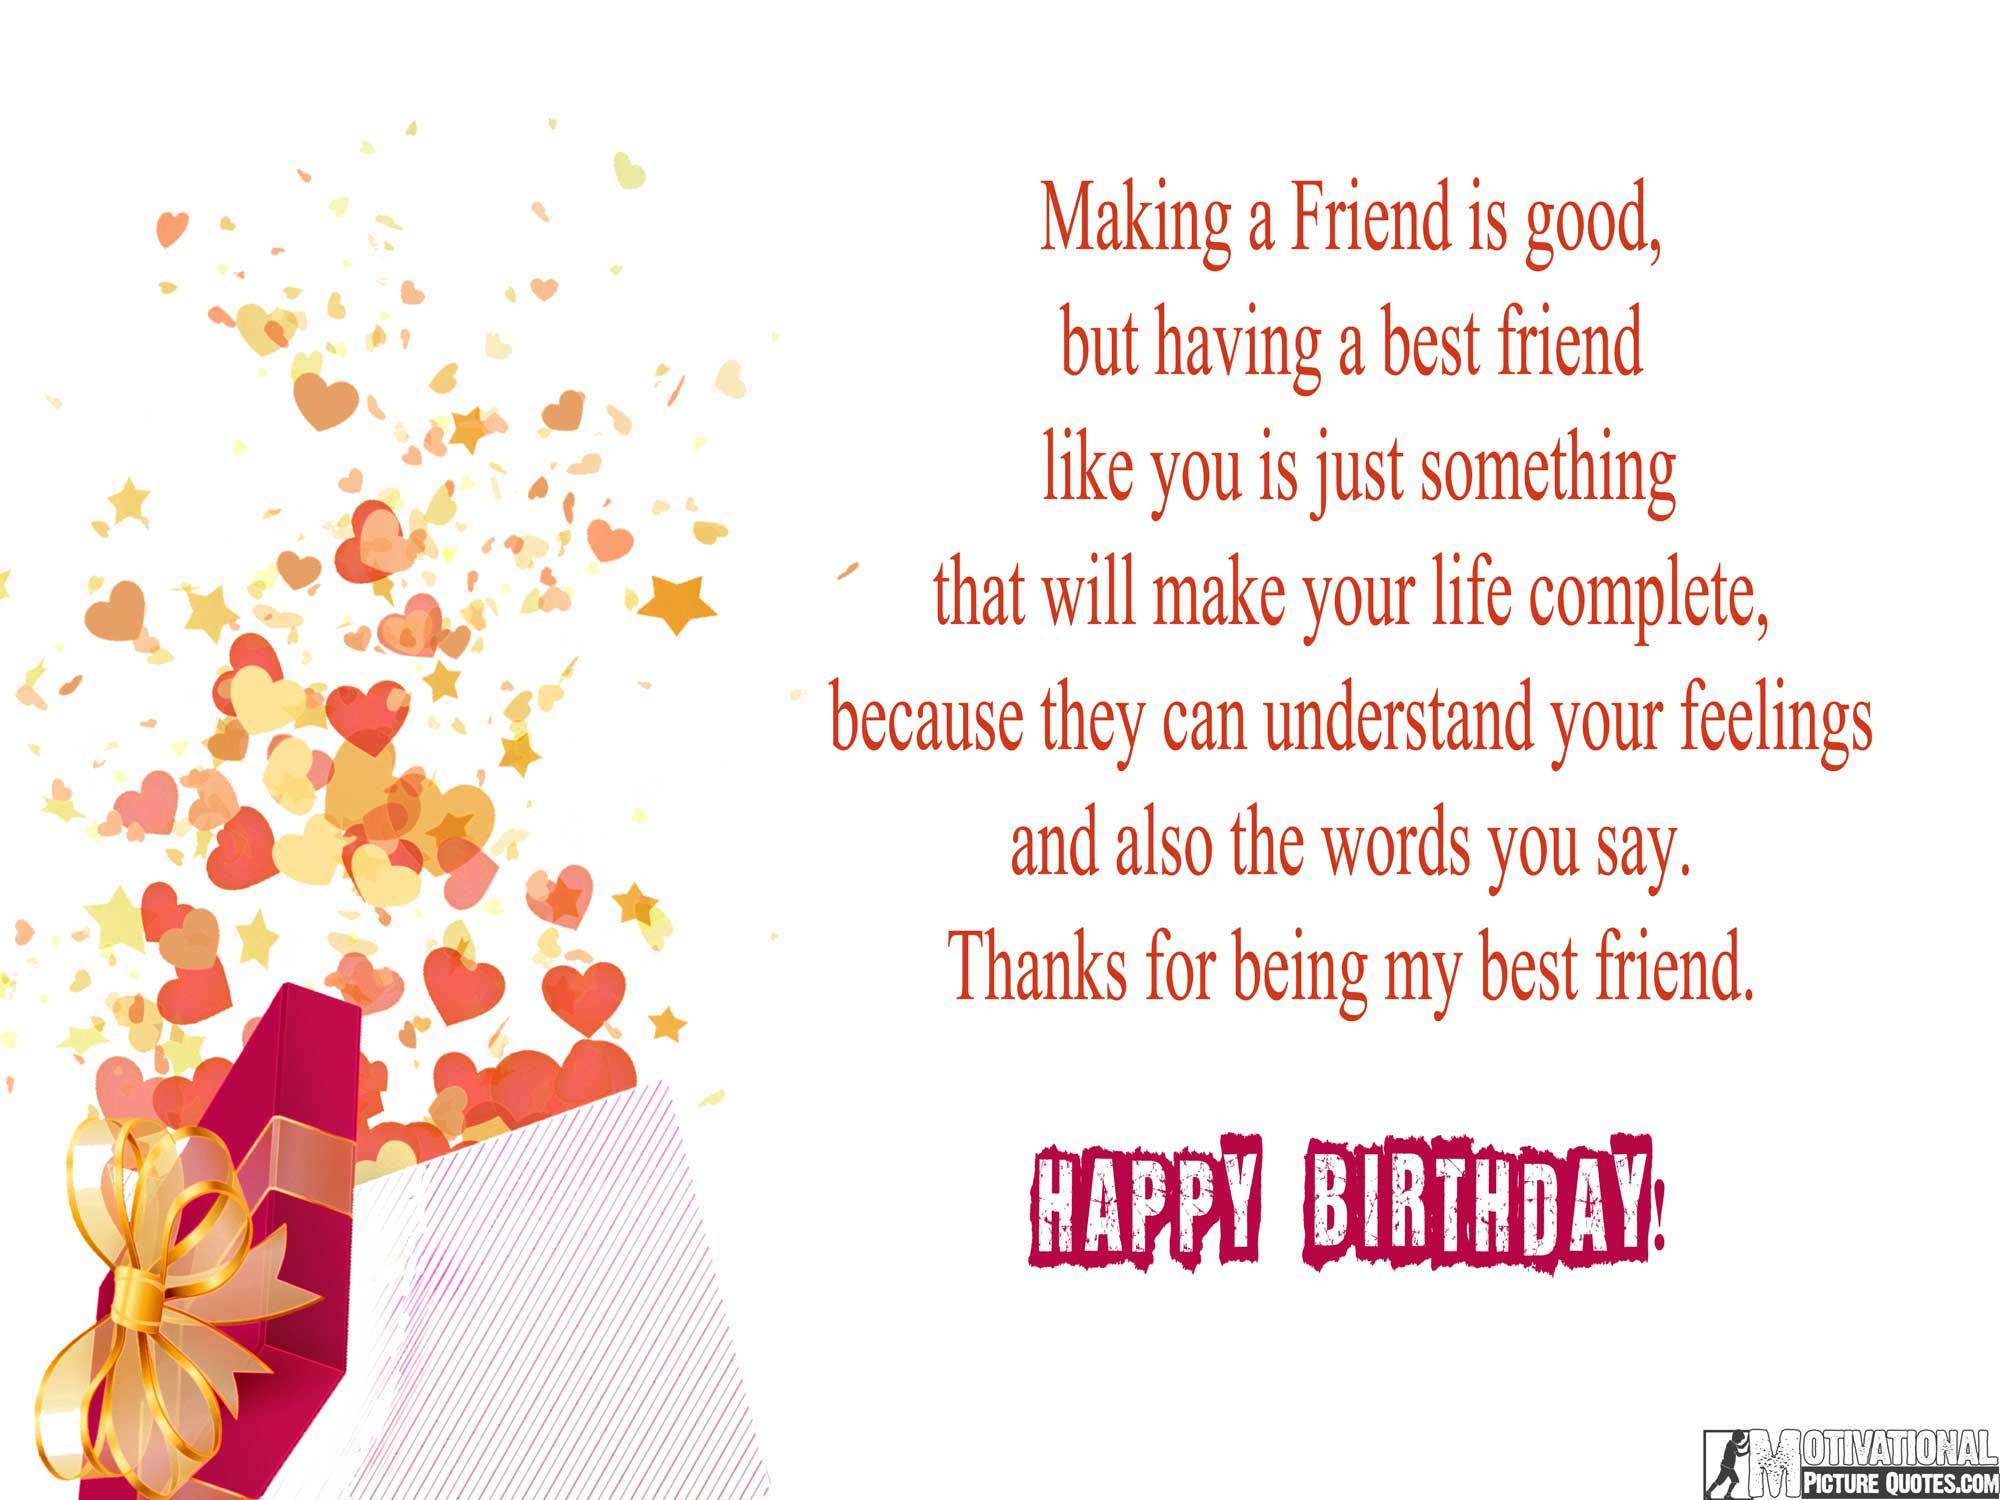 Short birthday greetings for a friend image collections greeting 35 inspirational birthday quotes images insbright birthday message for friend kristyandbryce image collections kristyandbryce Gallery